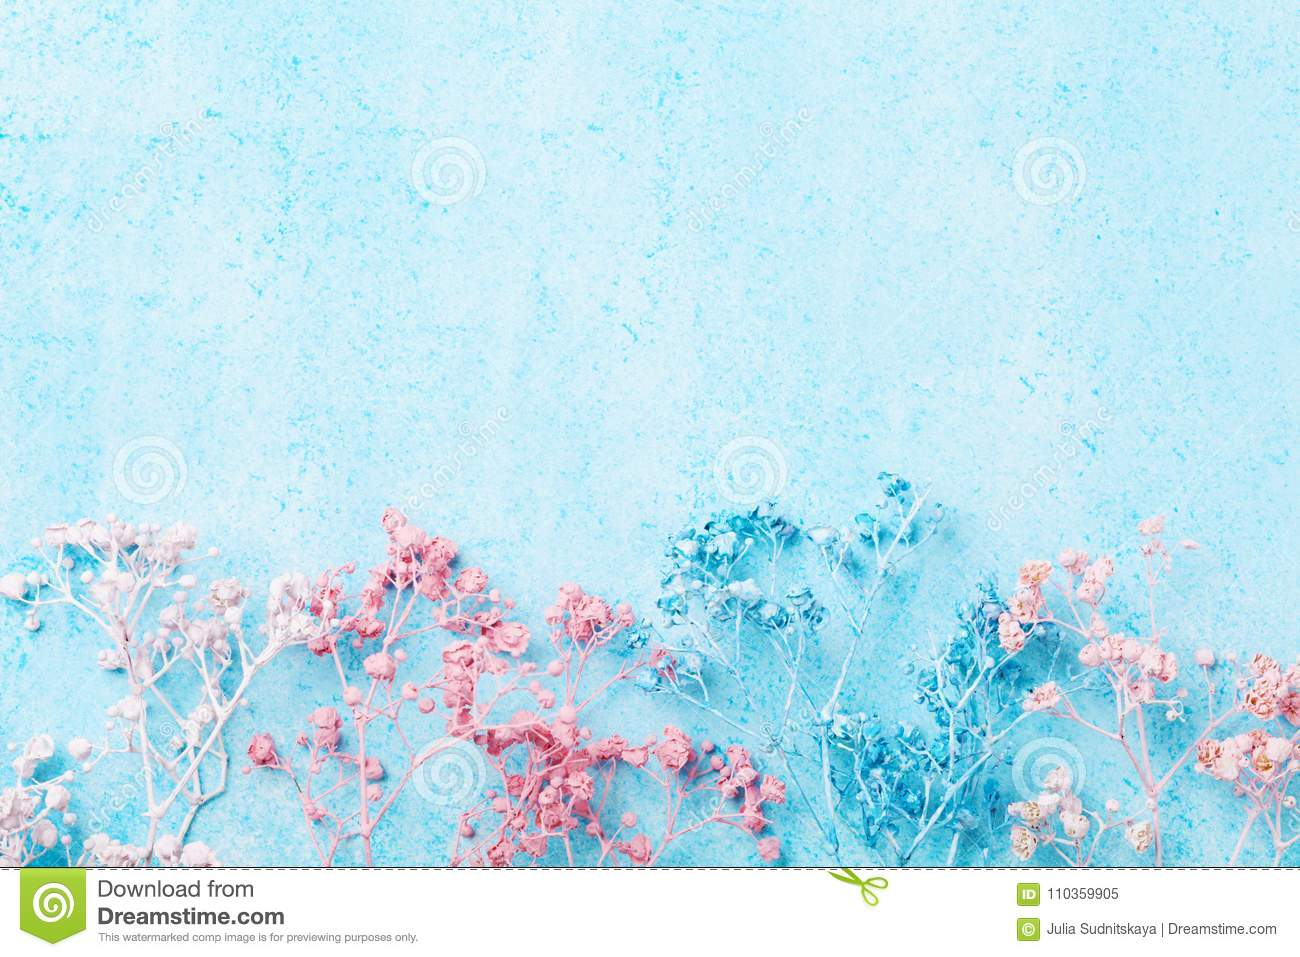 980 937 Wedding Background Photos Free Royalty Free Stock Photos From Dreamstime